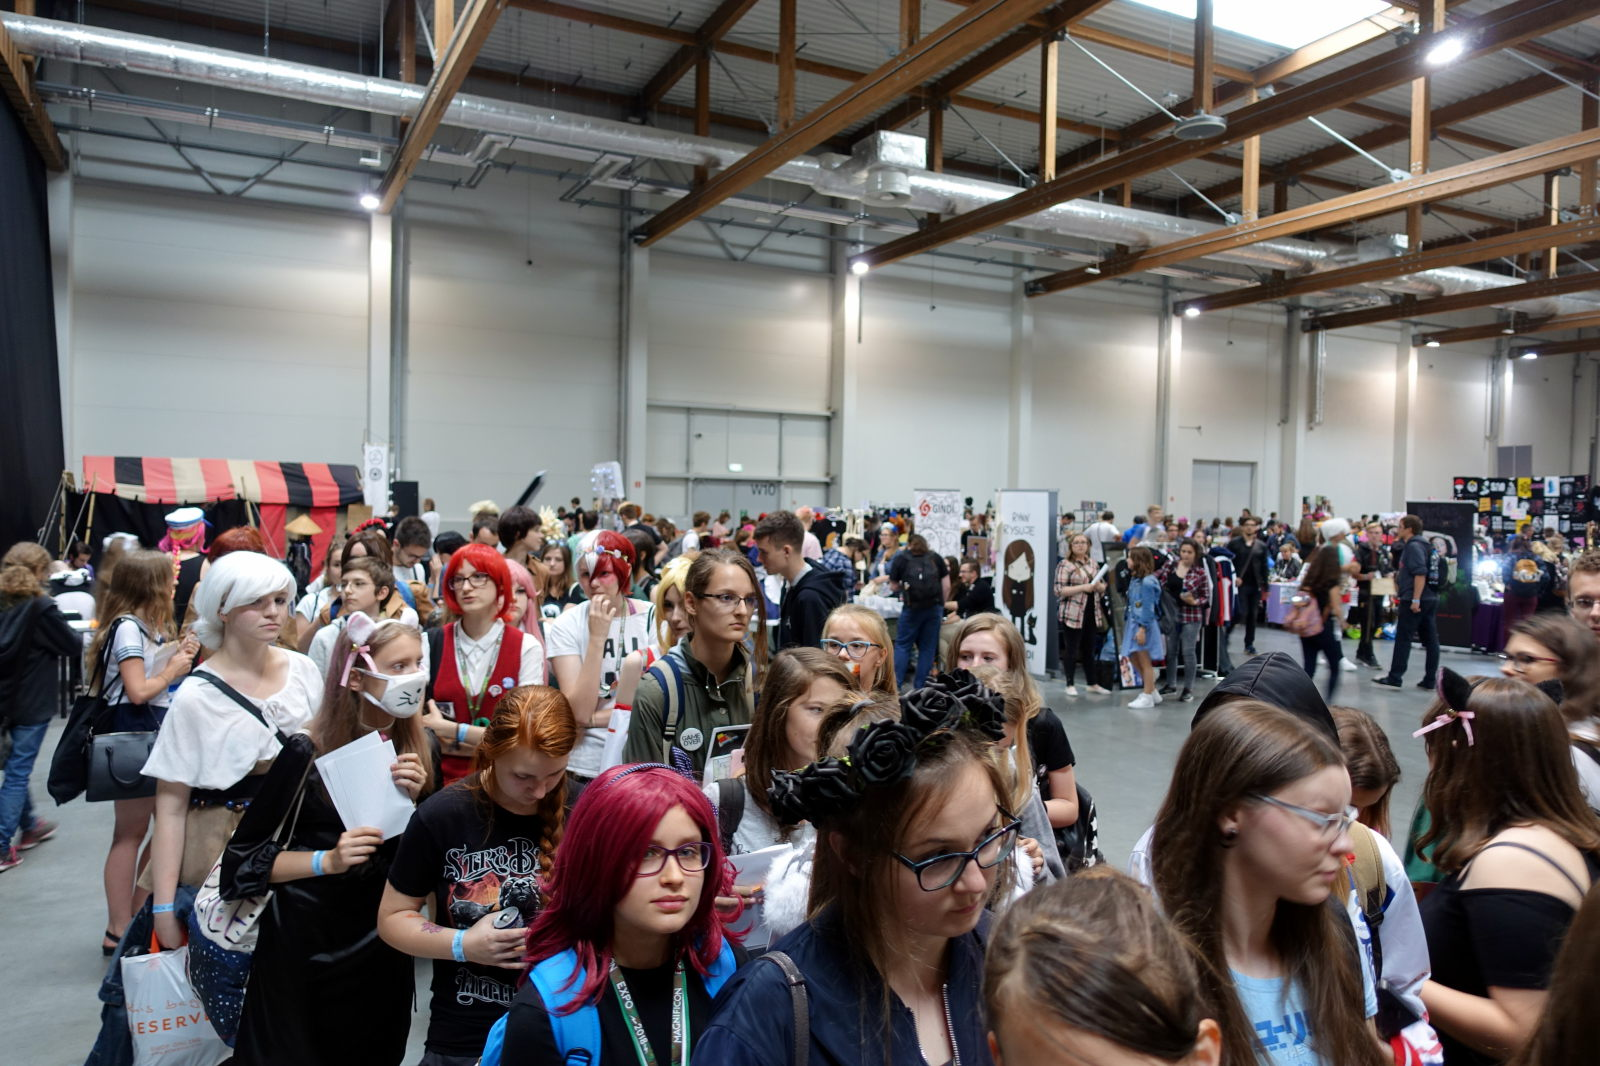 People queueing in a large hall. Behind them there are dealers' booths.